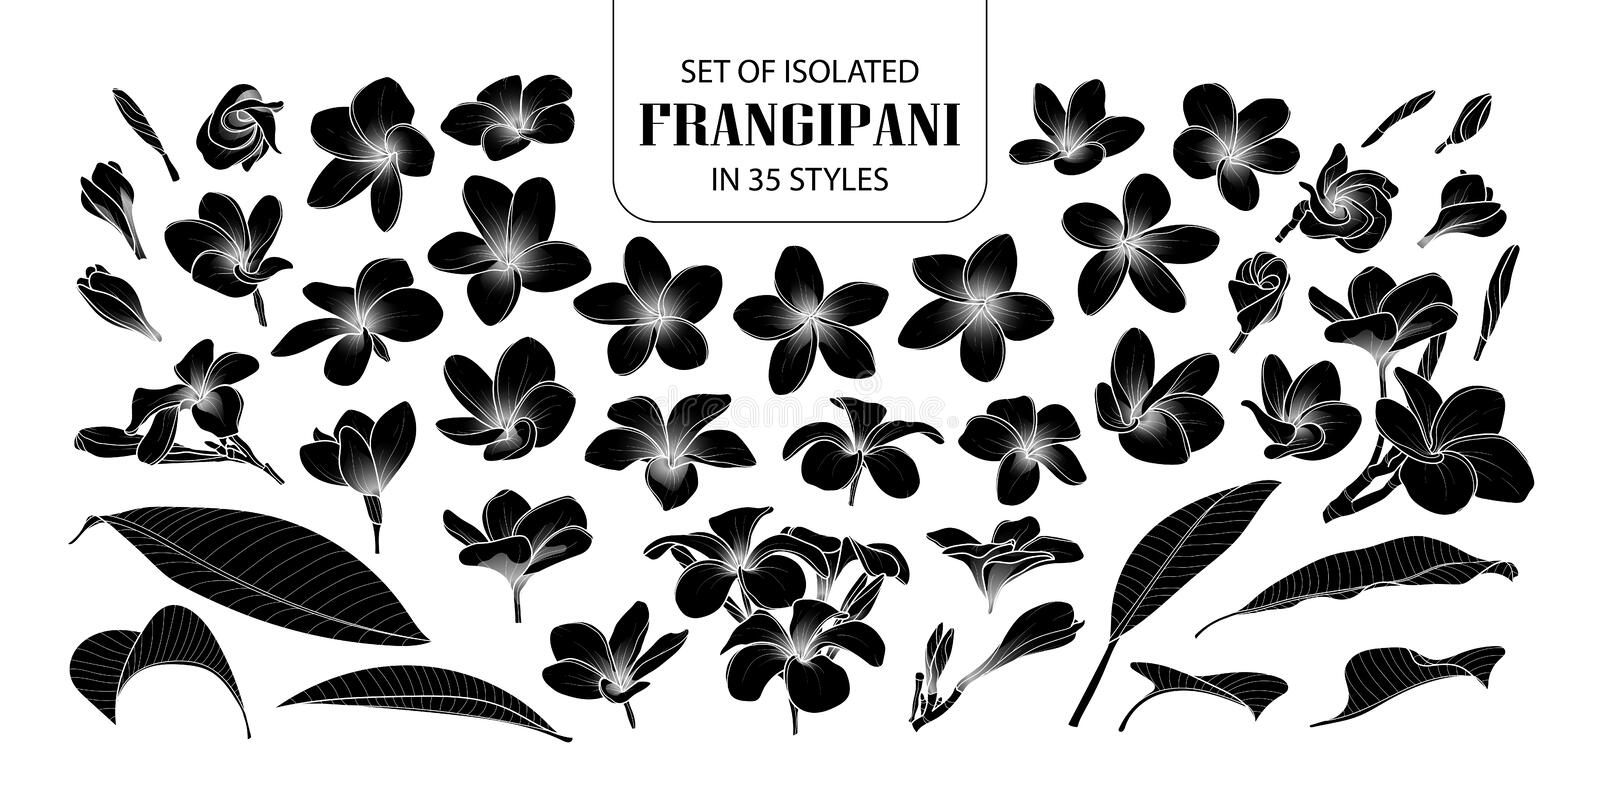 Set of isolated silhouette frangipani in 35 styles. stock illustration